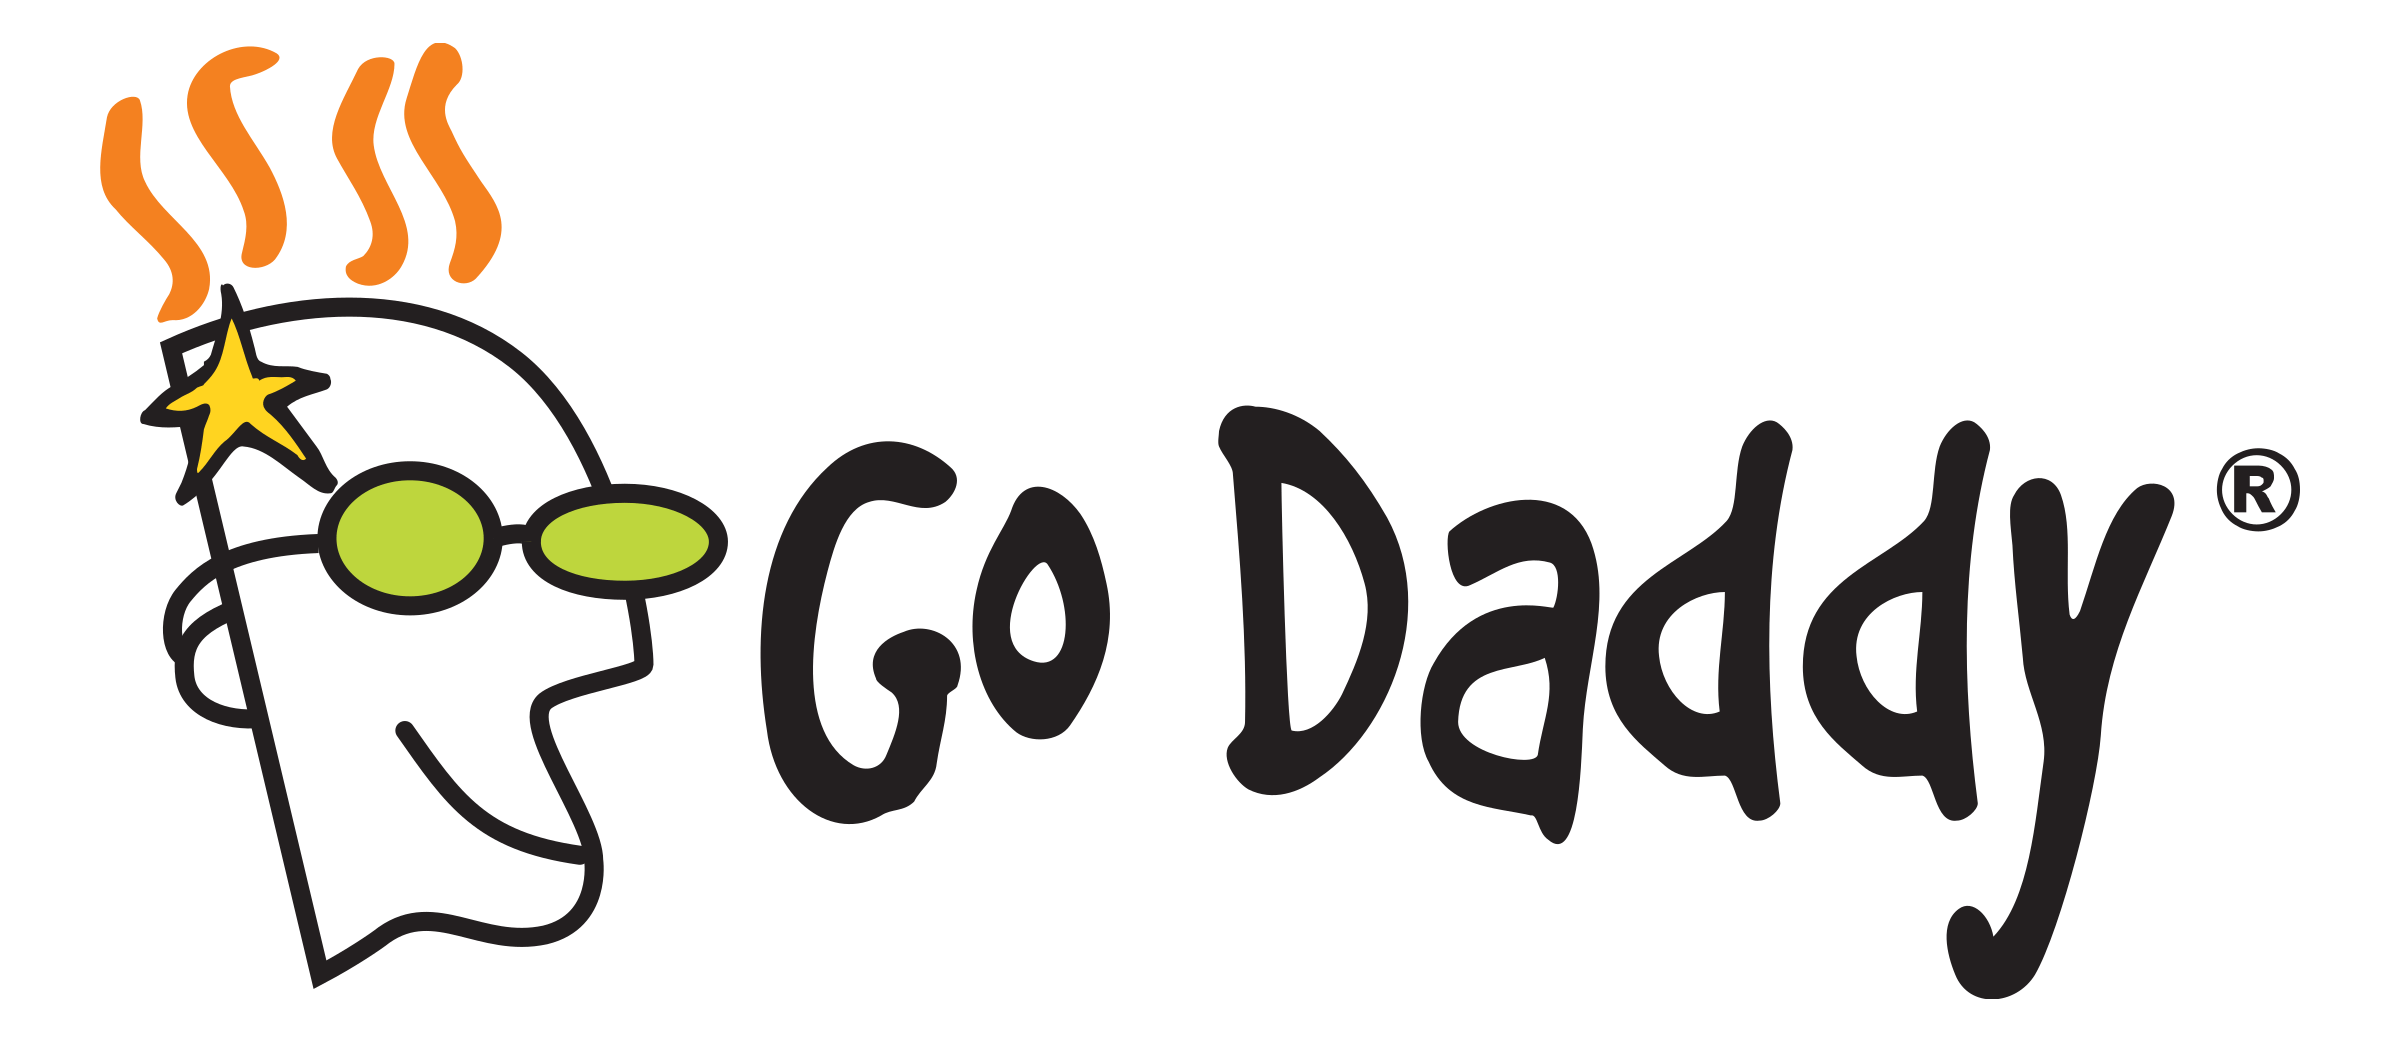 Godaddy discount coupon code